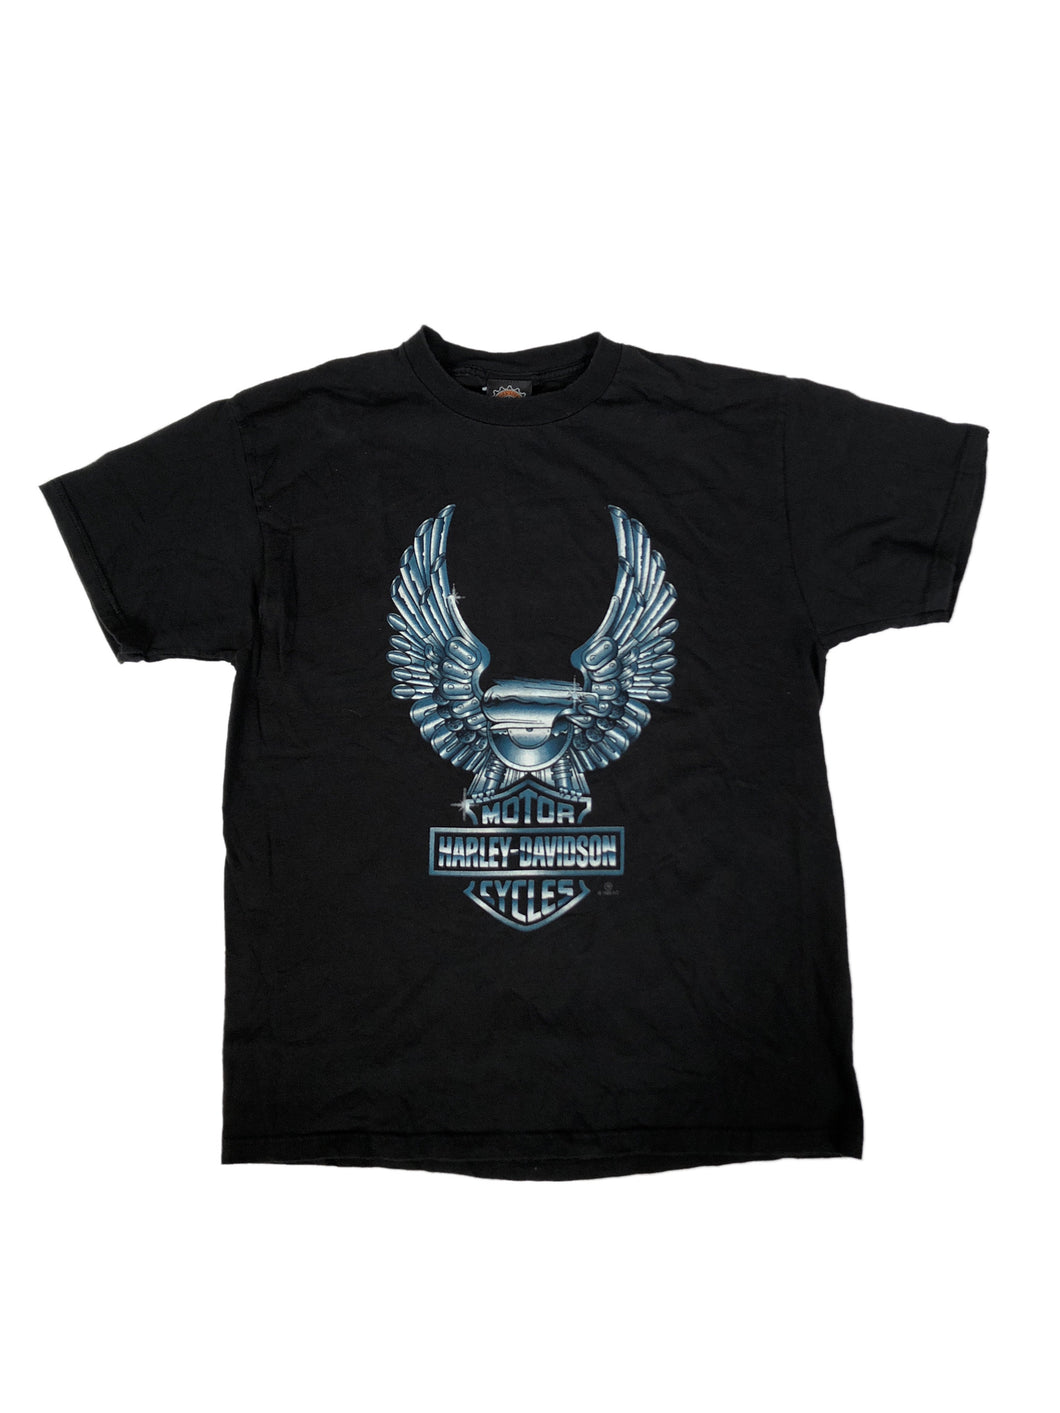 Harley Davidson Chrome Eagle Tee